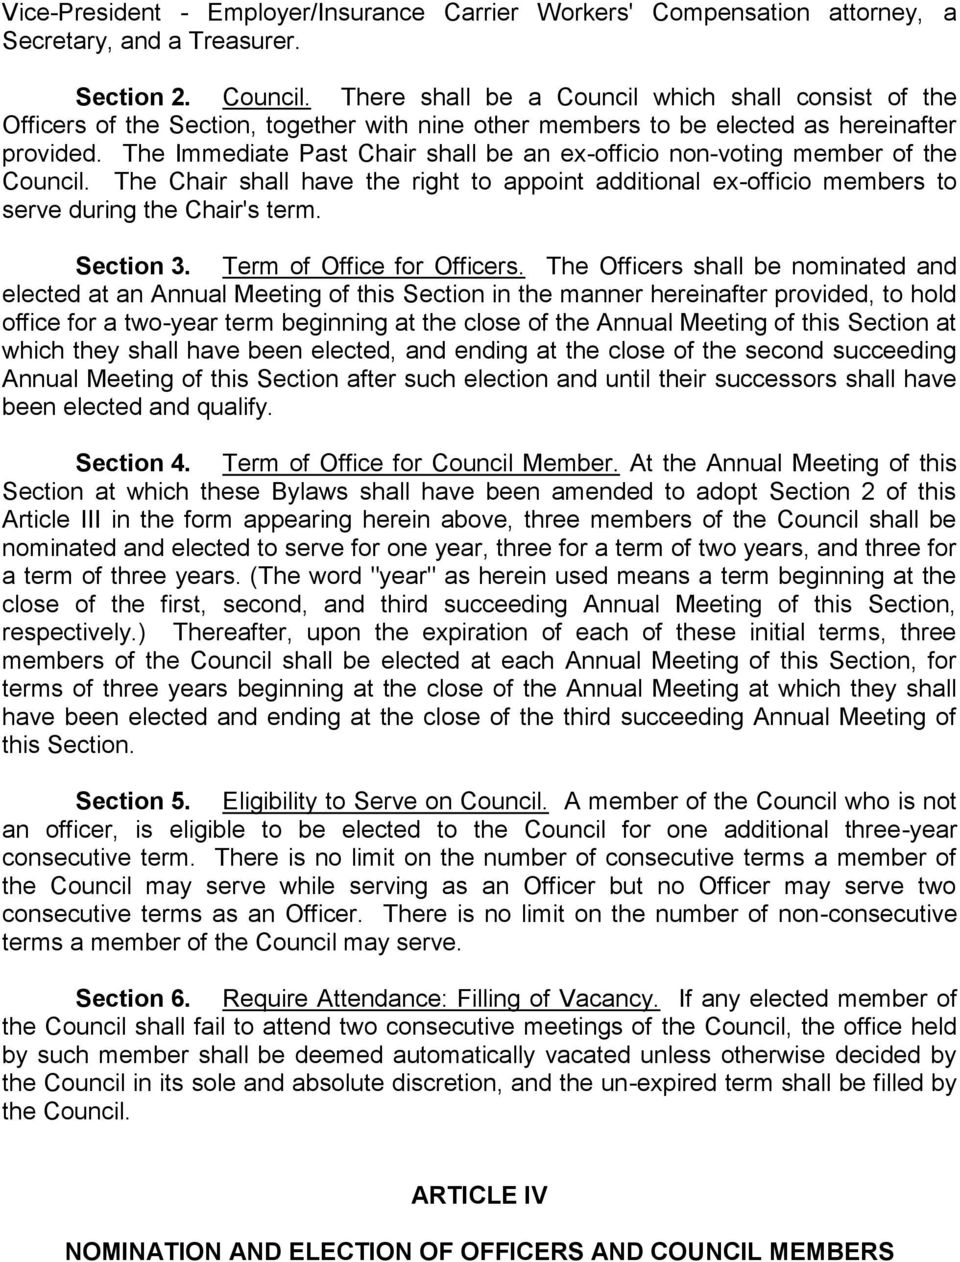 The Immediate Past Chair shall be an ex-officio non-voting member of the Council. The Chair shall have the right to appoint additional ex-officio members to serve during the Chair's term. Section 3.